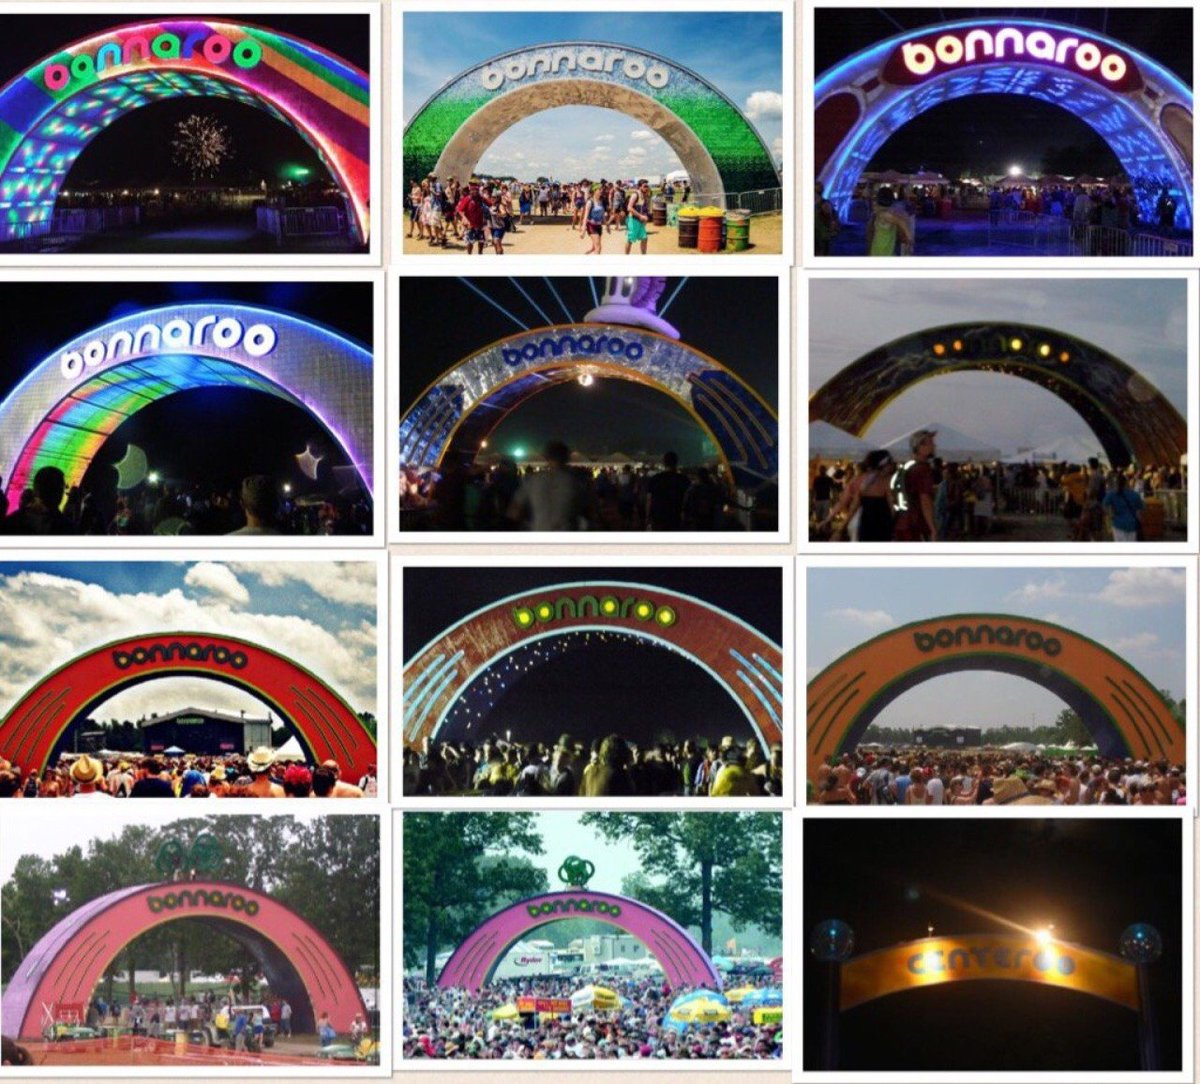 RIP Bonnaroo arch: Landmark burned, dismantled due to 'structural issues'